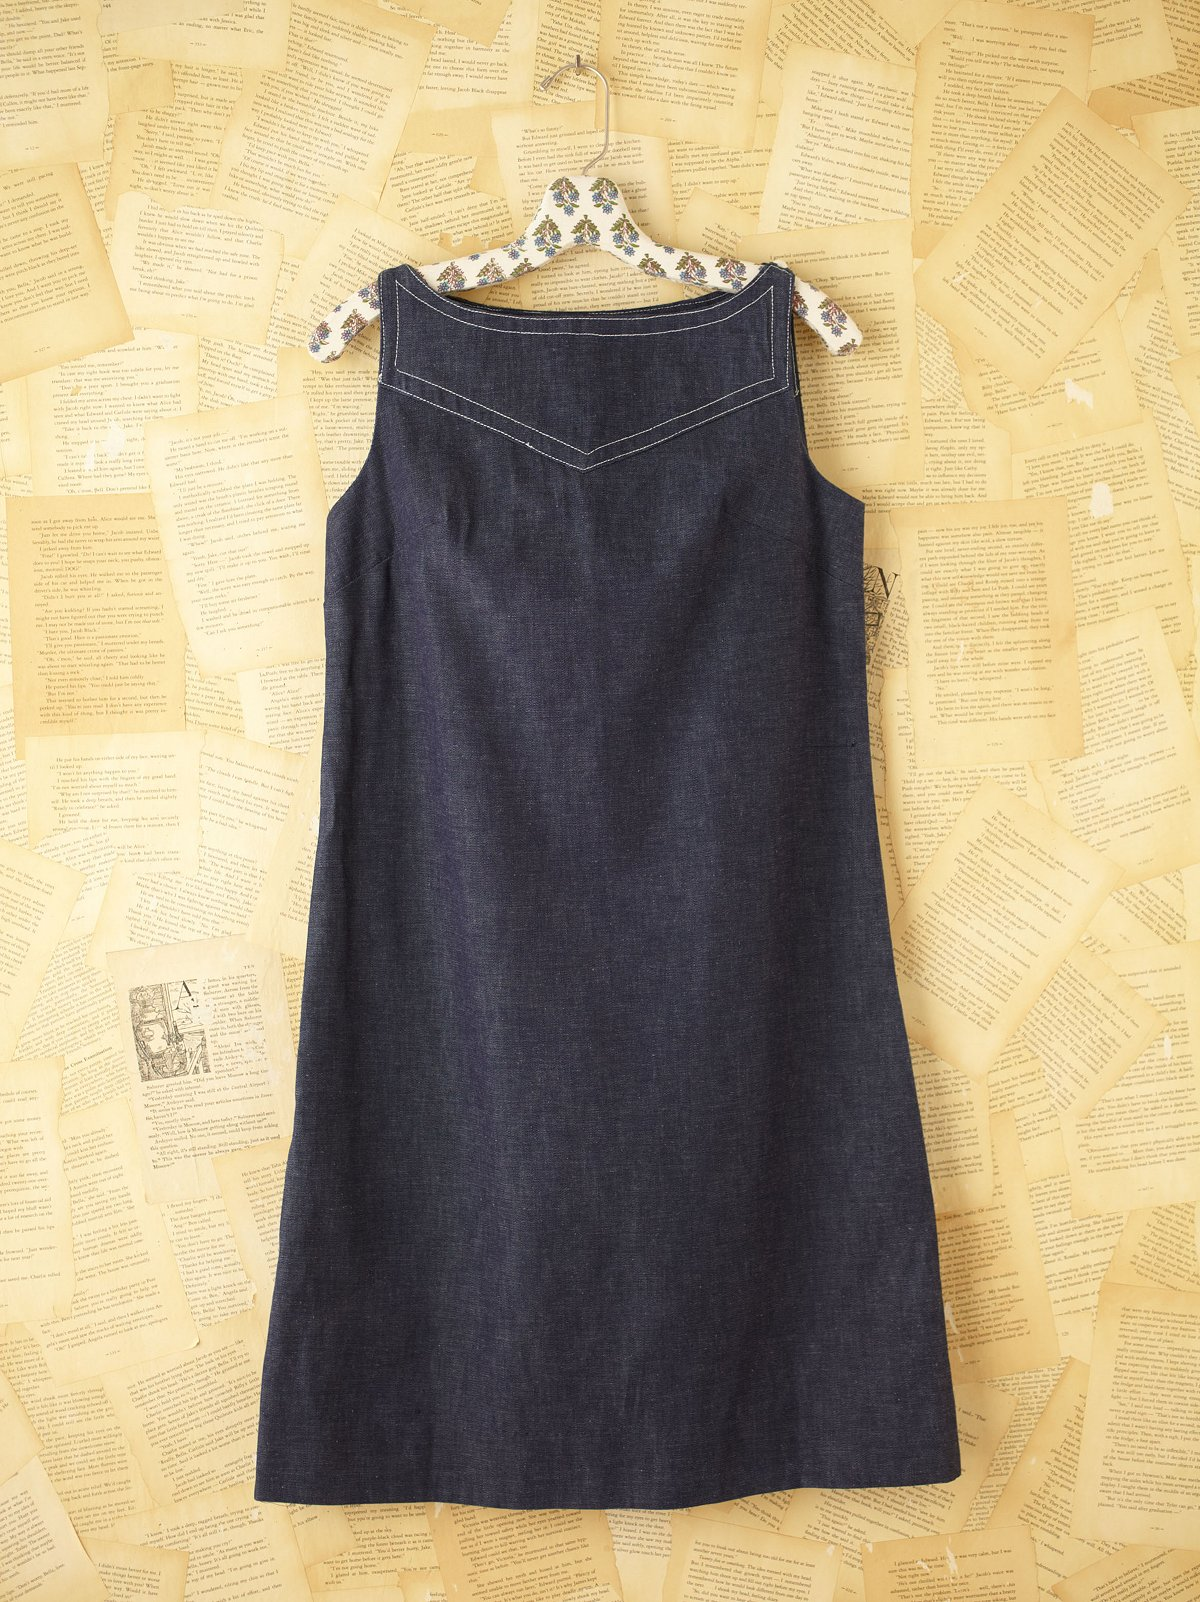 Vintage Mod Denim Dress